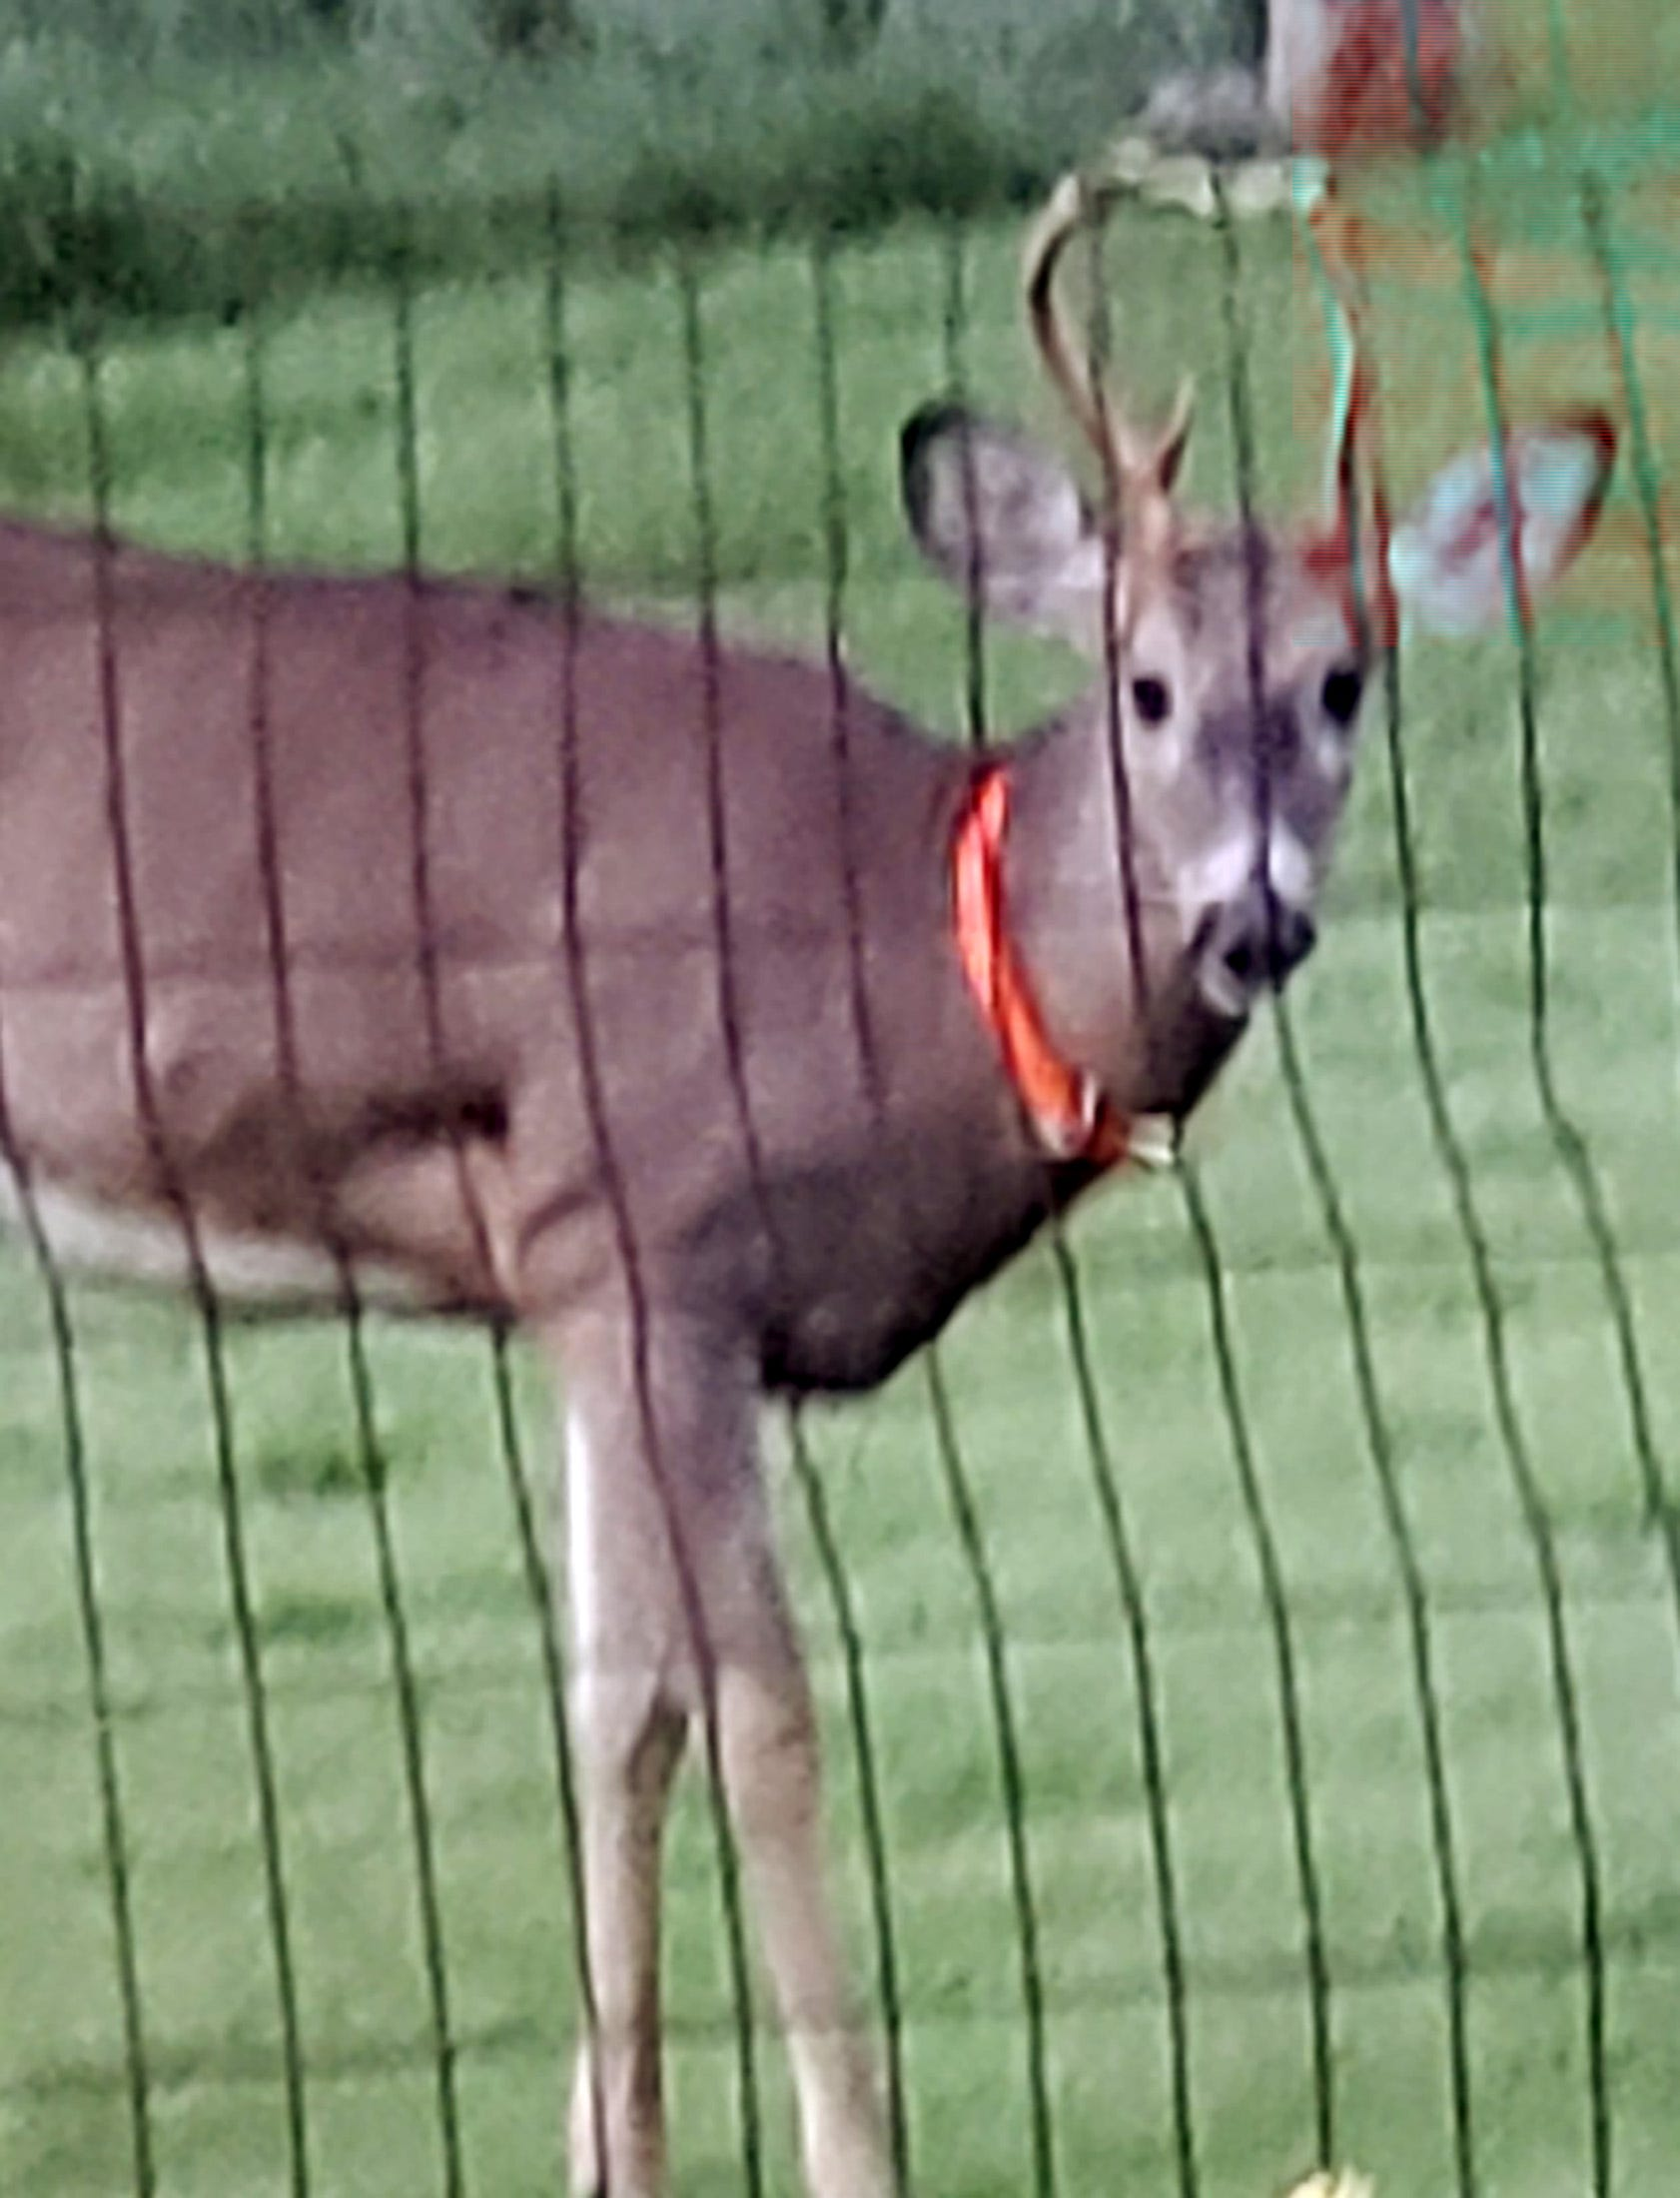 'I thought I was going to die': Woman attacked by deer in front yard, saved by son